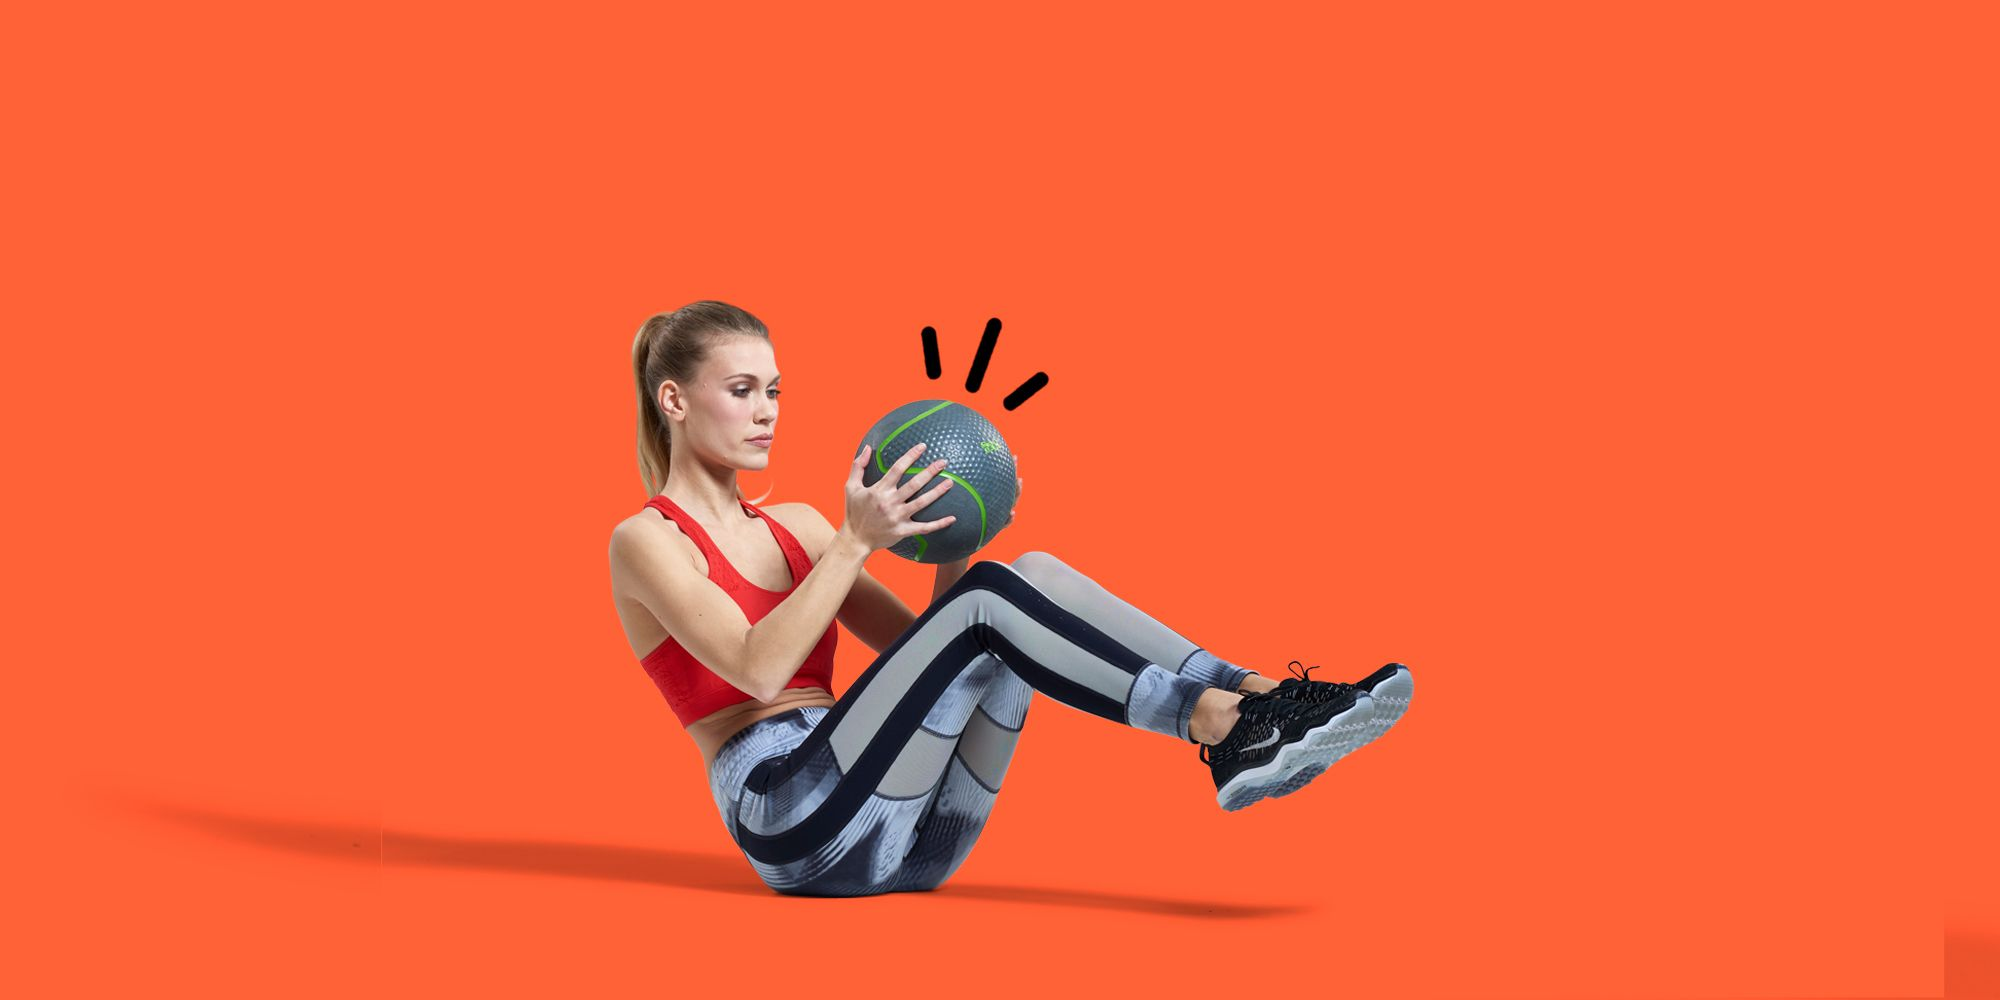 How to master Russian twists to sculpt your abs and waist